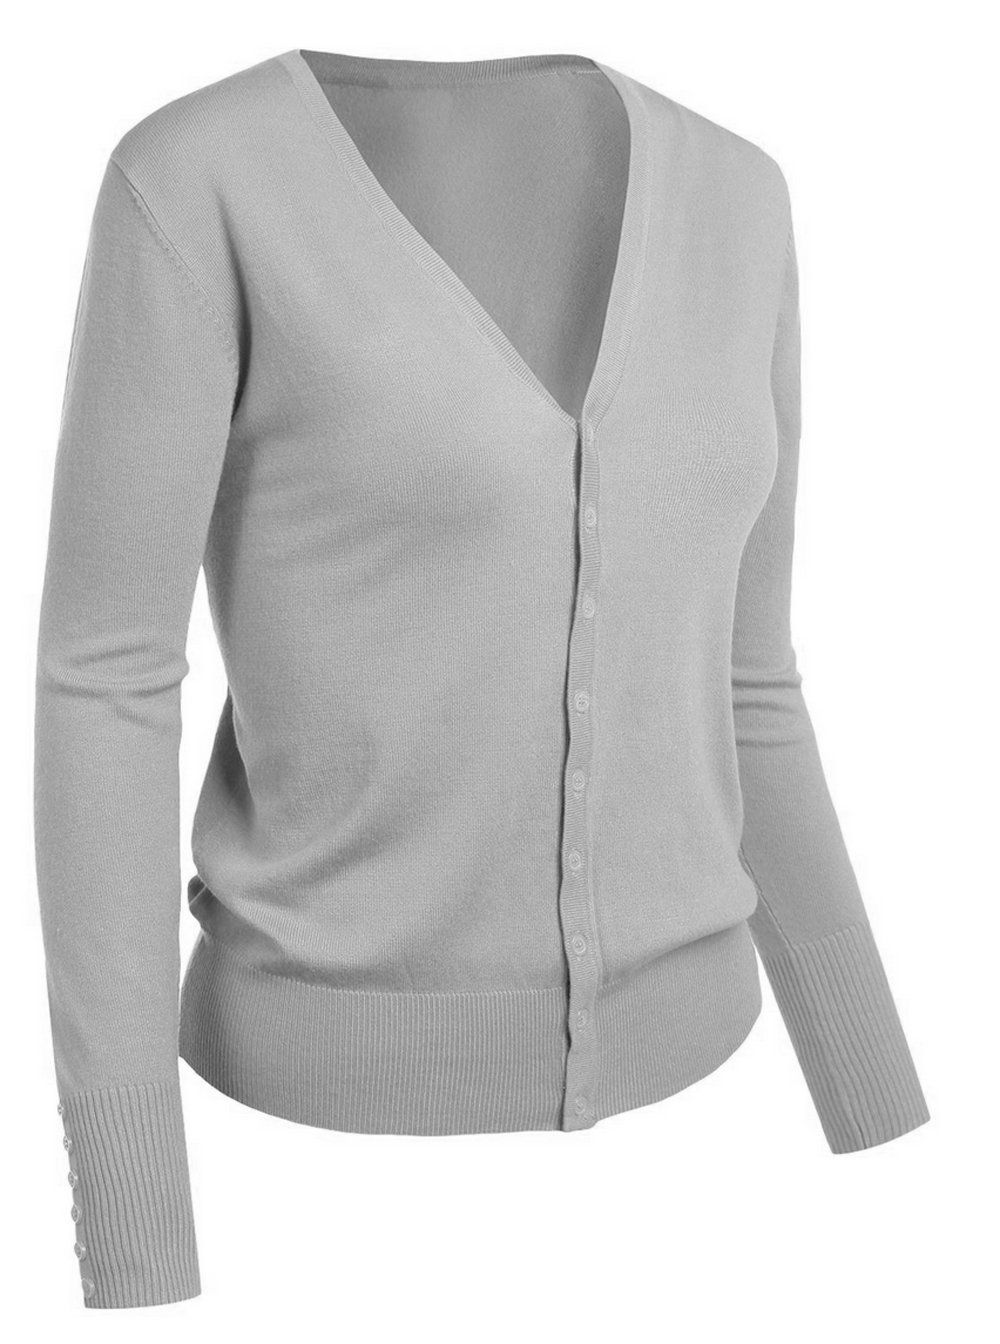 Emmalise Women's Classic V-Neck Button Down Cardigan Sweater at ...